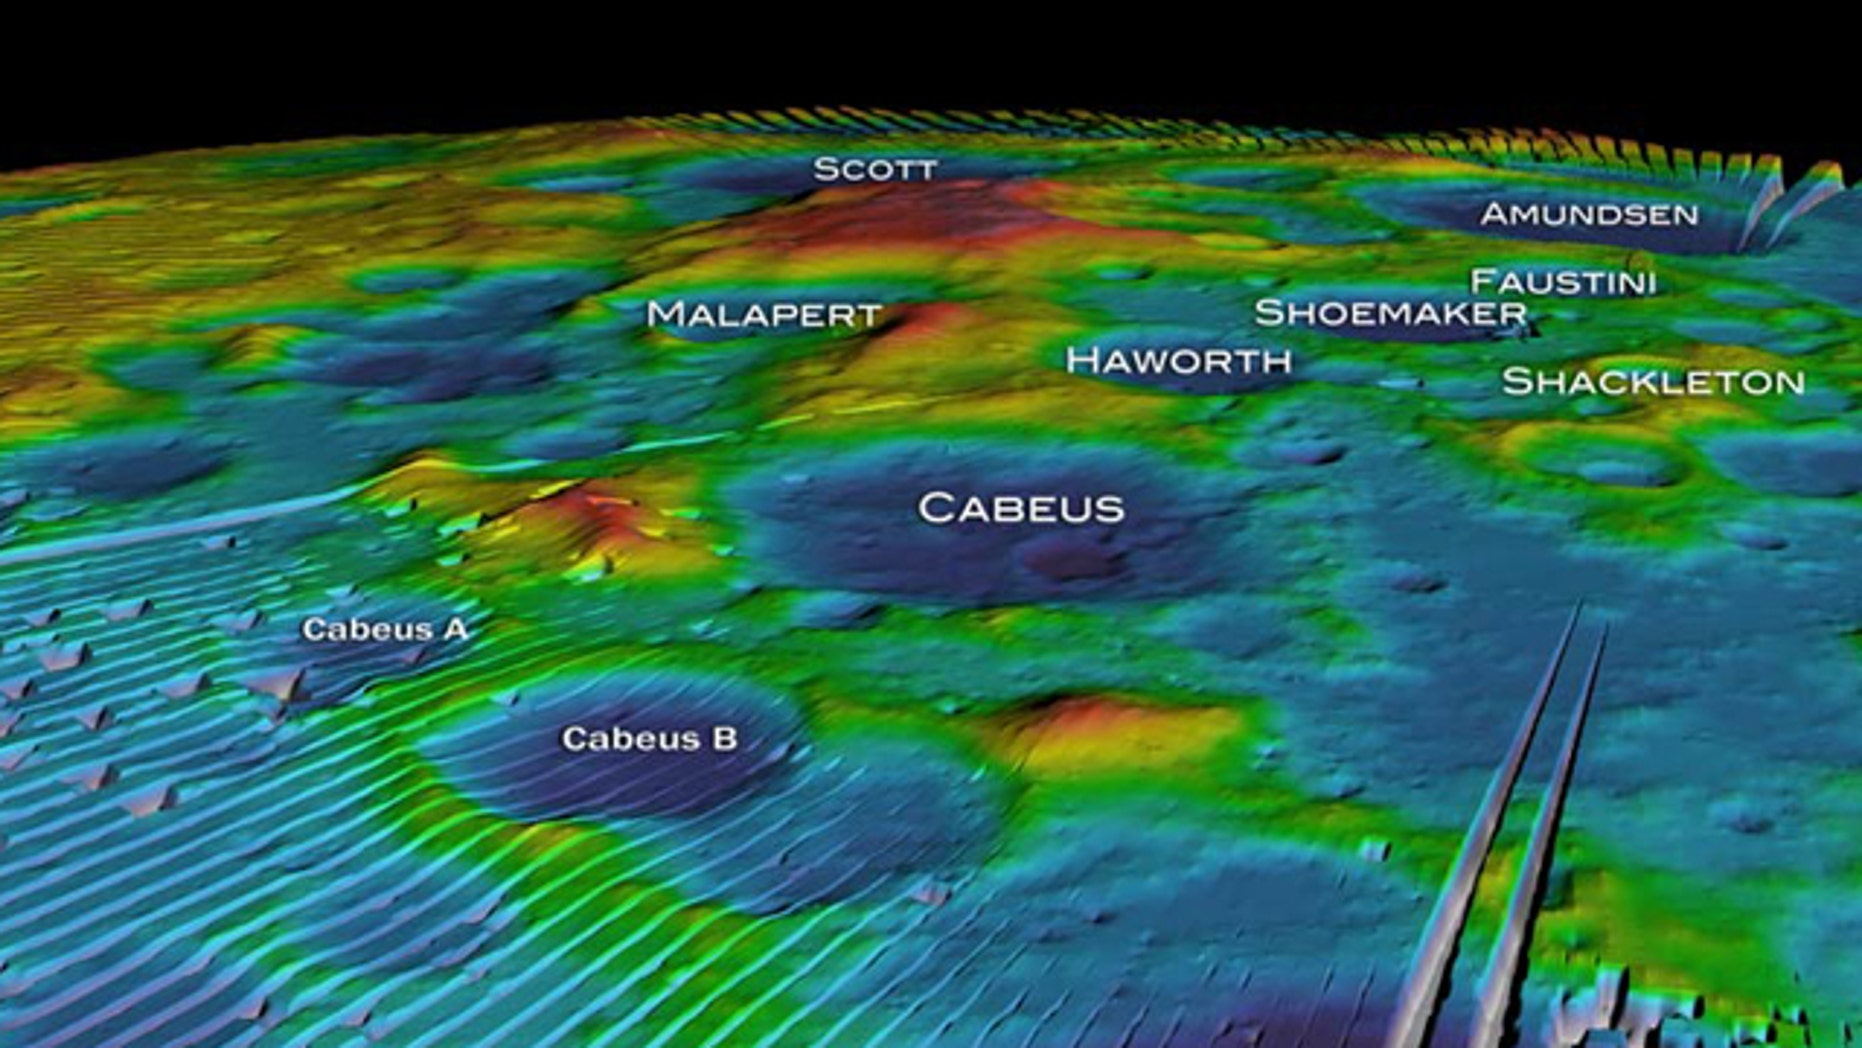 This mosaic, taken from a NASA animation, shows altitude measurements of the moon's south pole from the LOLA instrument aboard the Lunar Reconnaissance Orbiter.